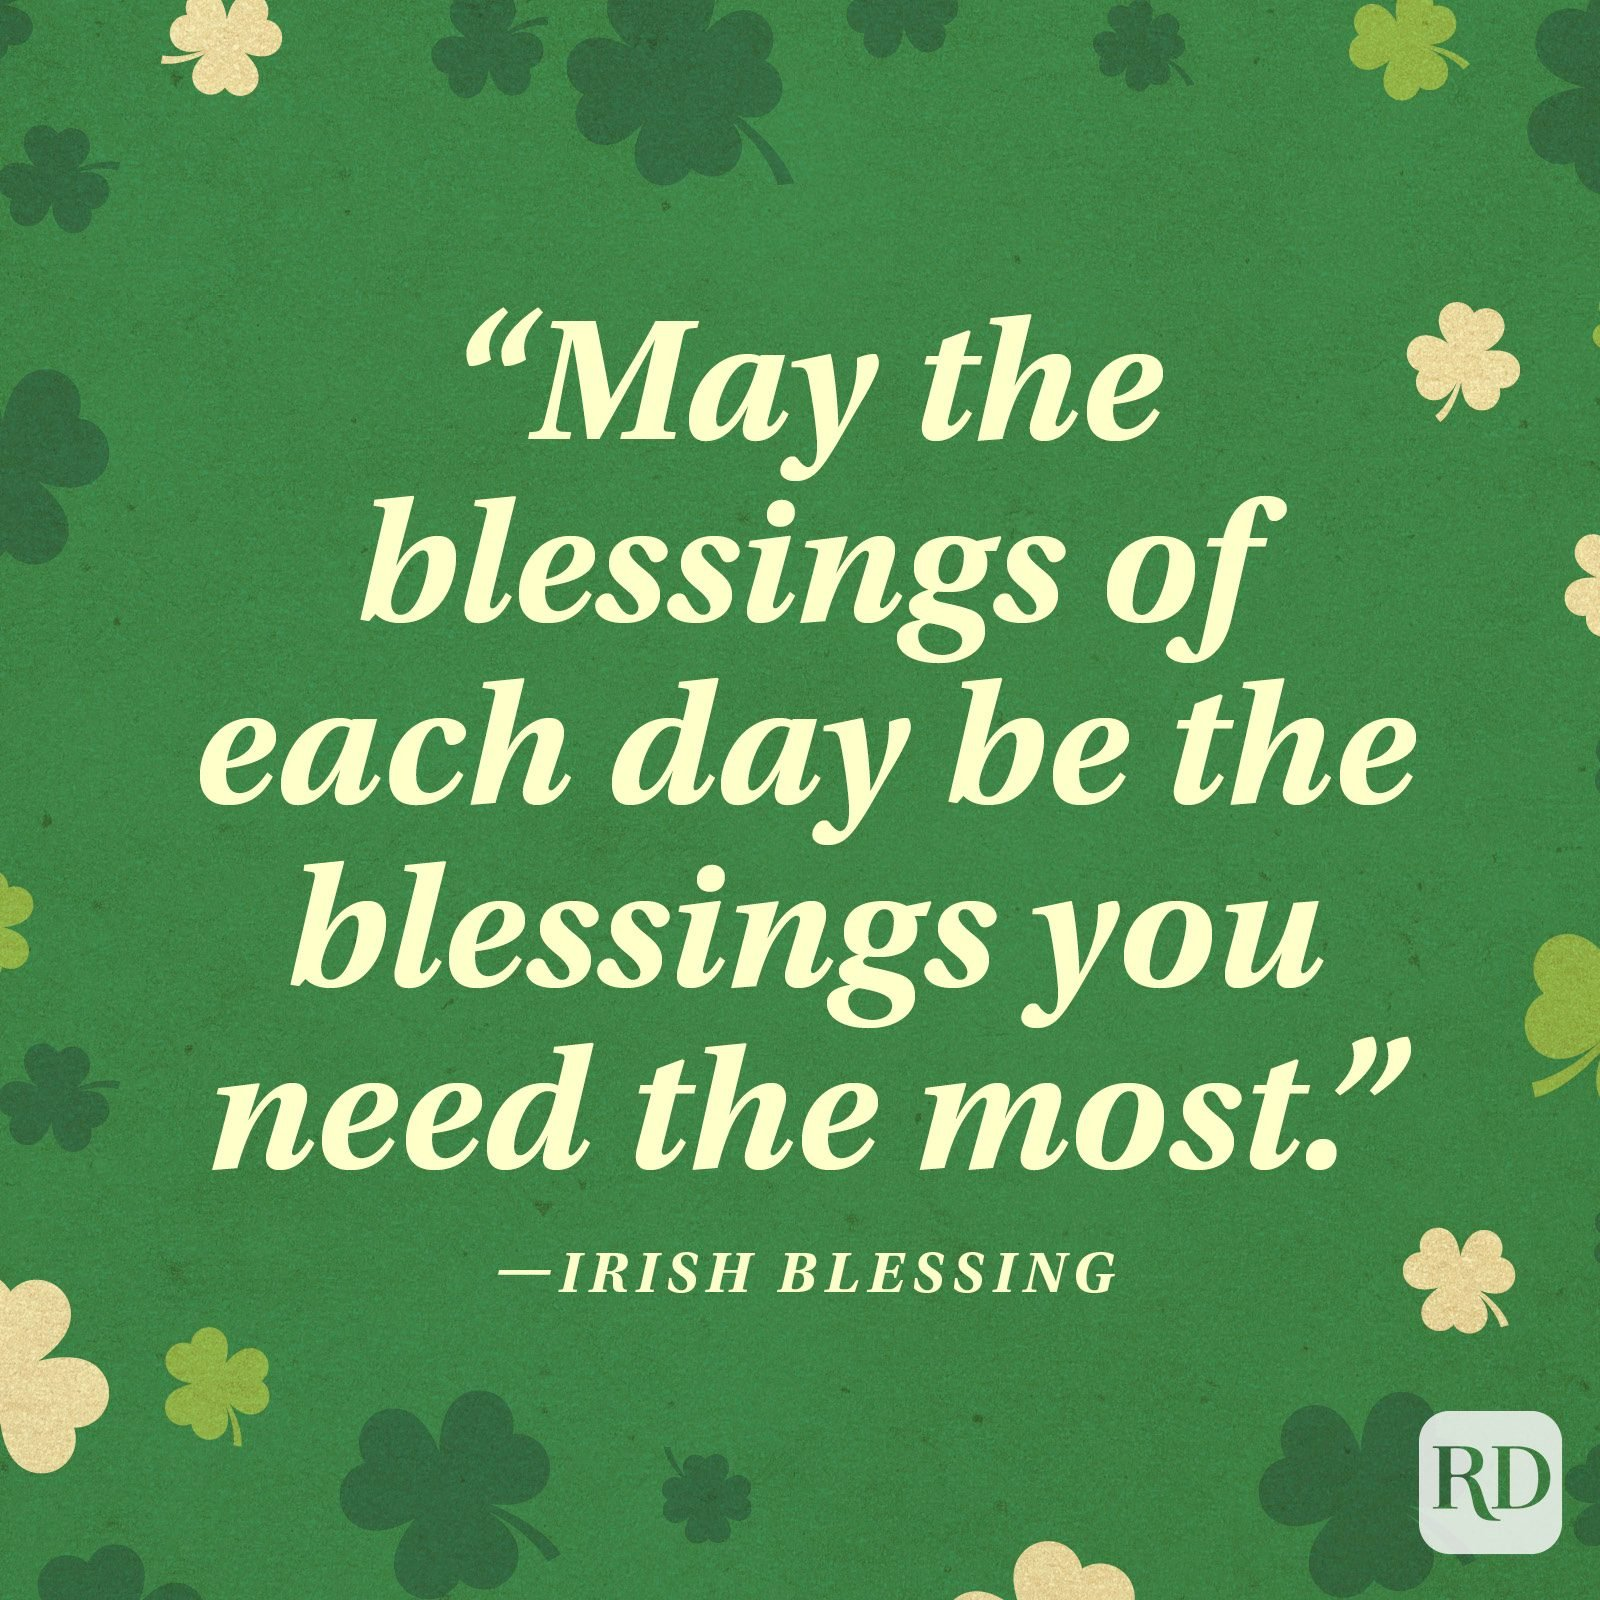 Quotes day st and images patricks 123+ Best